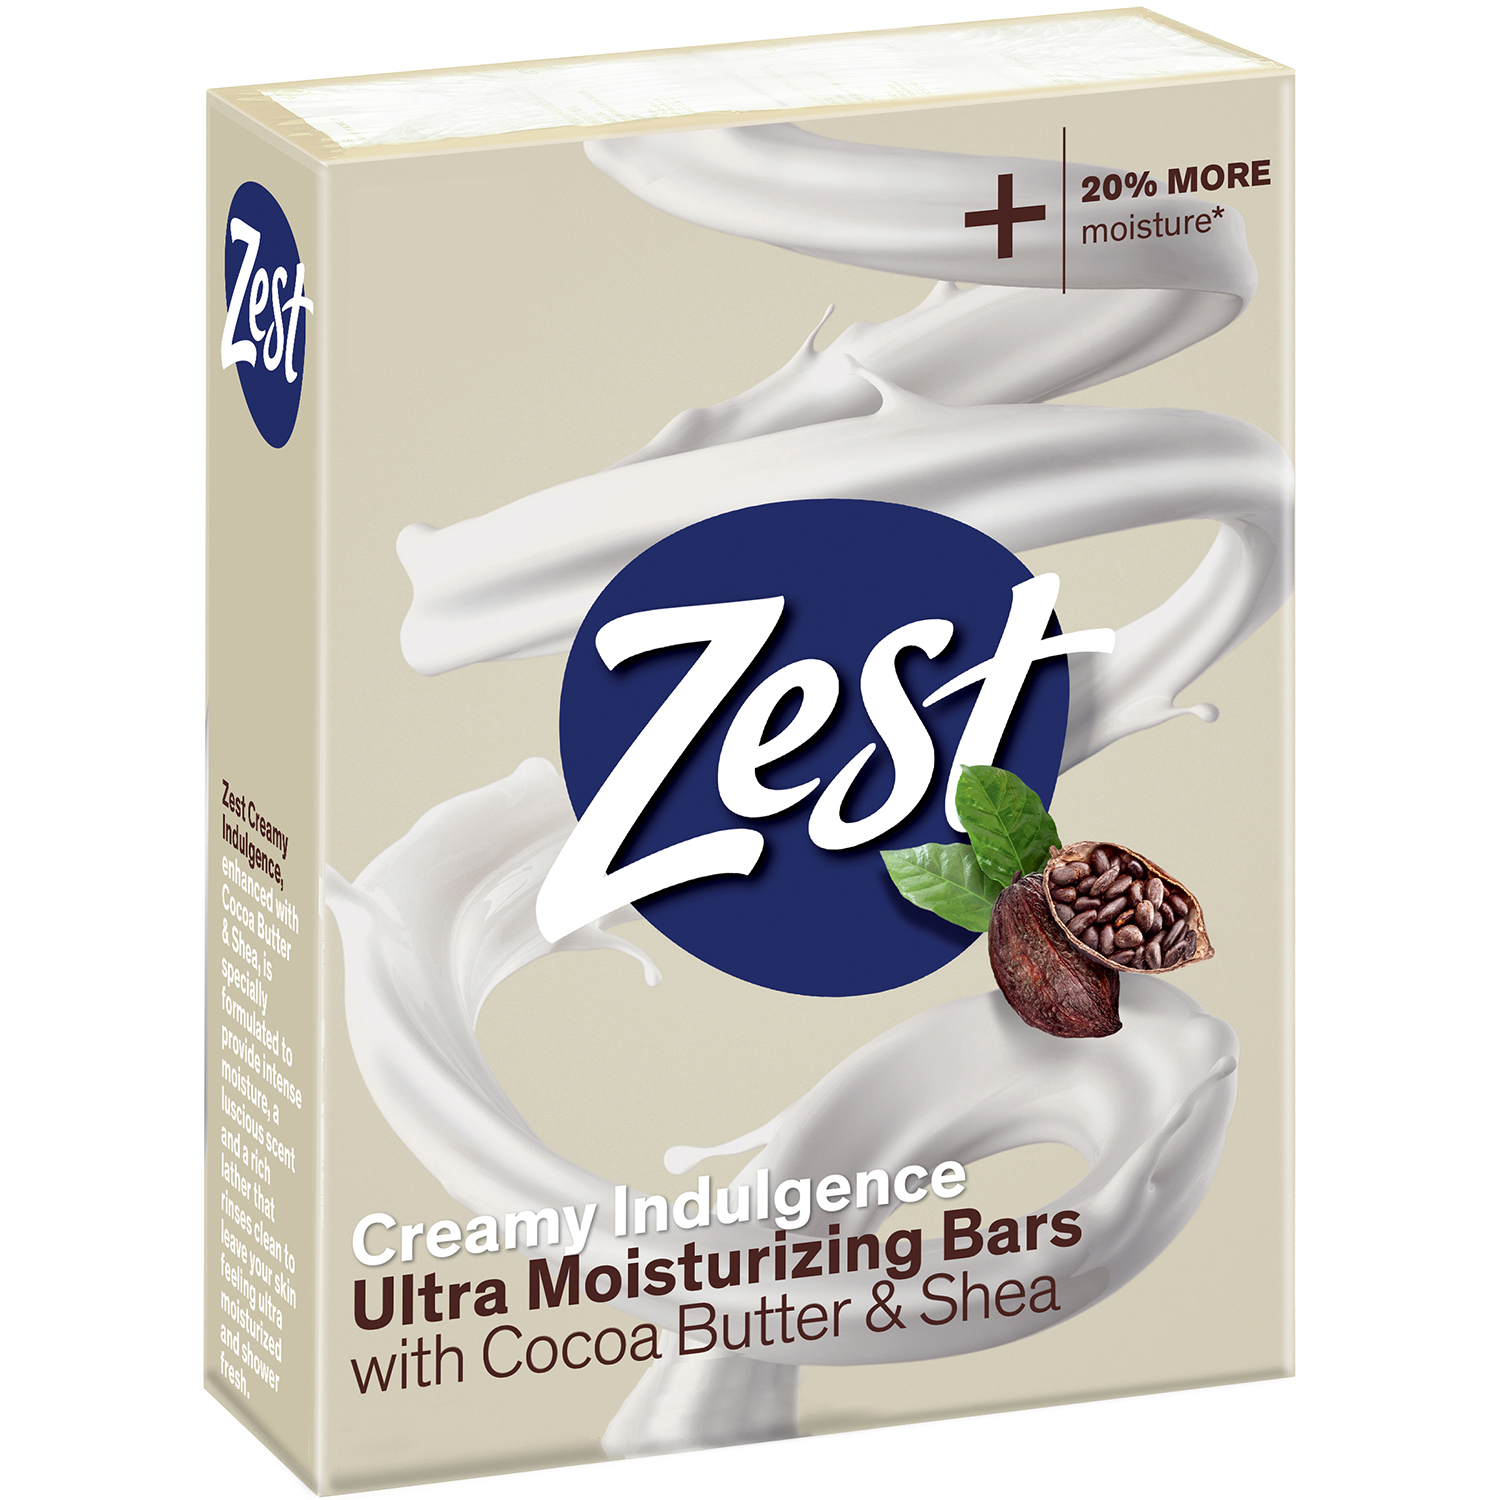 Zest Cocoa Butter Bars